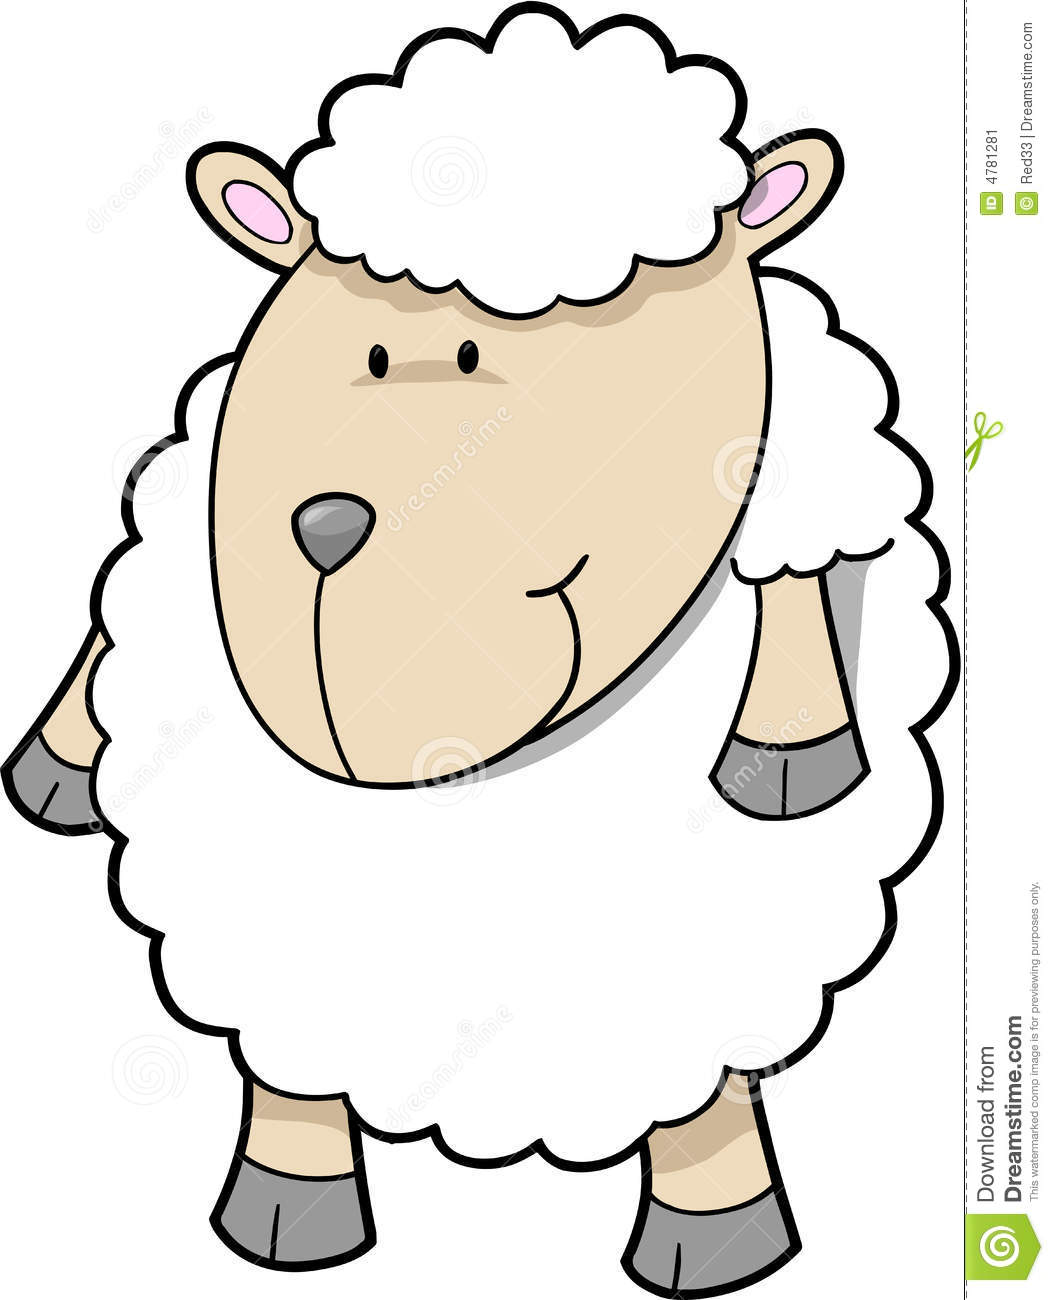 Cute Sheep Drawing Tumblr Cute Sheep Vector Stock Image Image 4781281